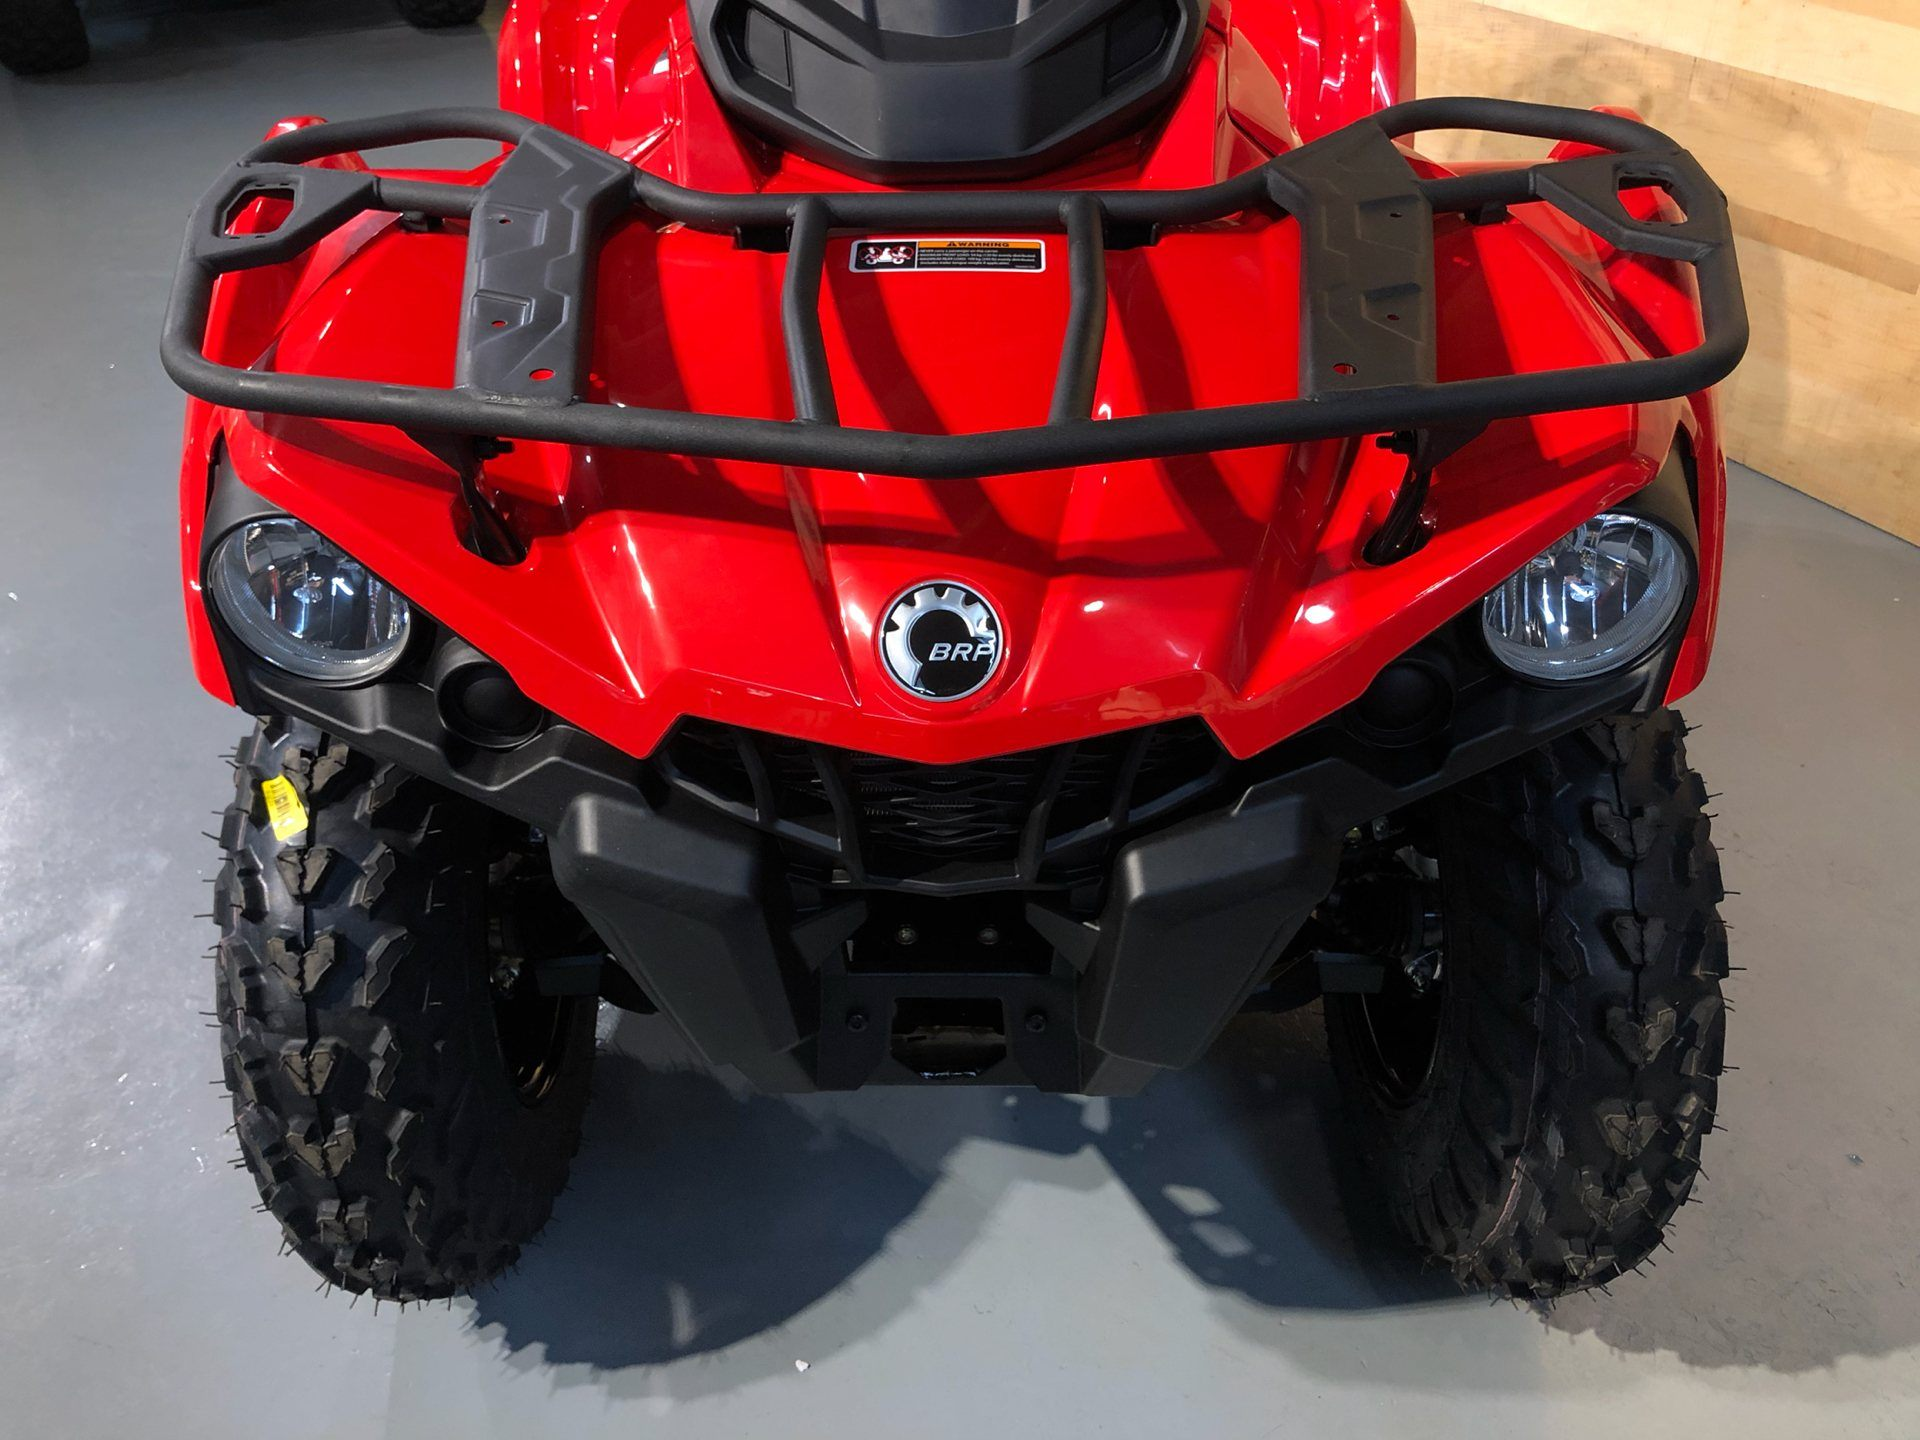 2020 Can-Am Outlander 450 in Enfield, Connecticut - Photo 10